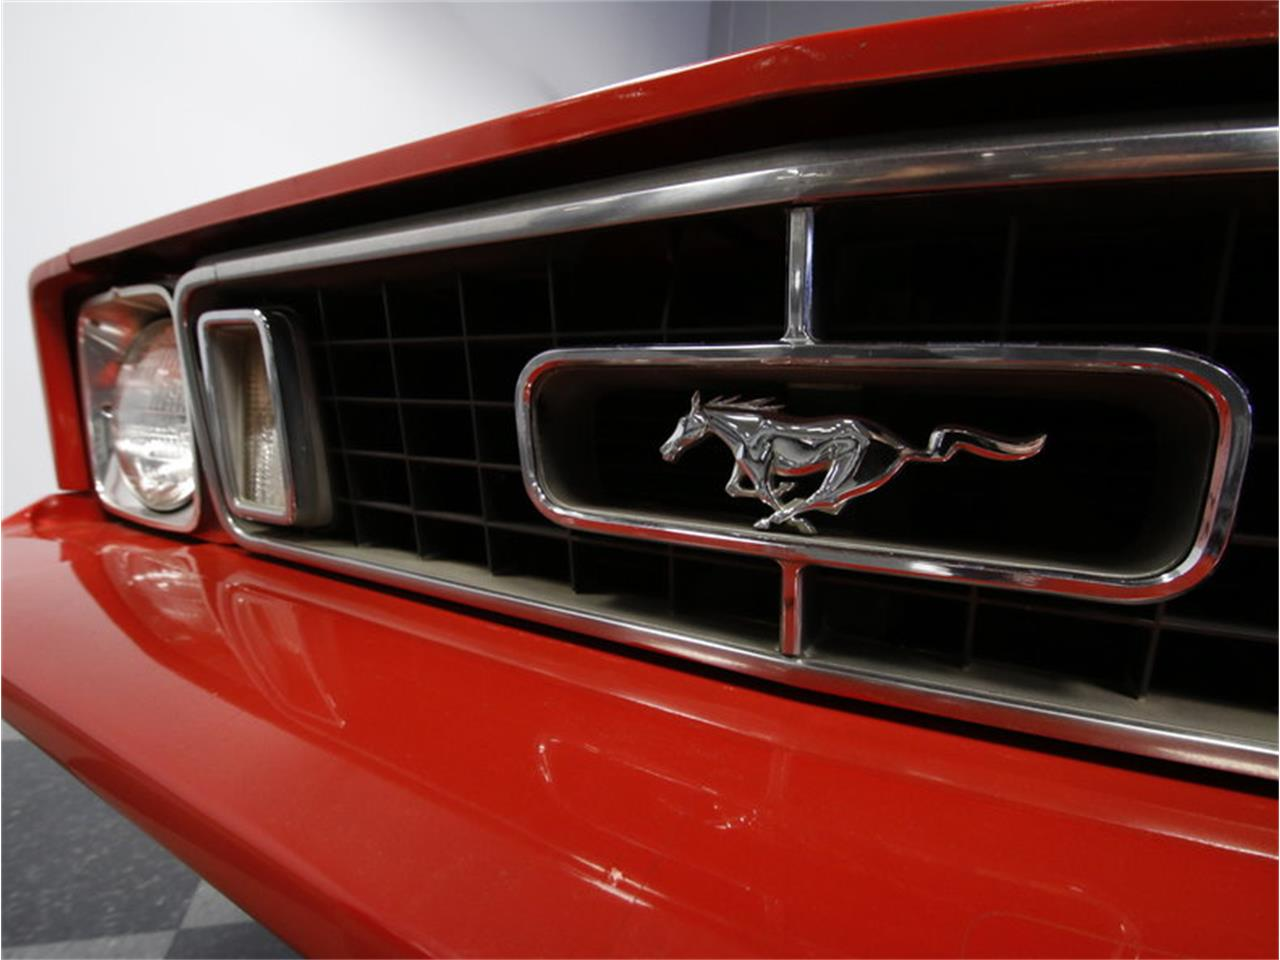 Large Picture of Classic '73 Ford Mustang 351 Cobra Jet located in North Carolina Offered by Streetside Classics - Charlotte - KISW